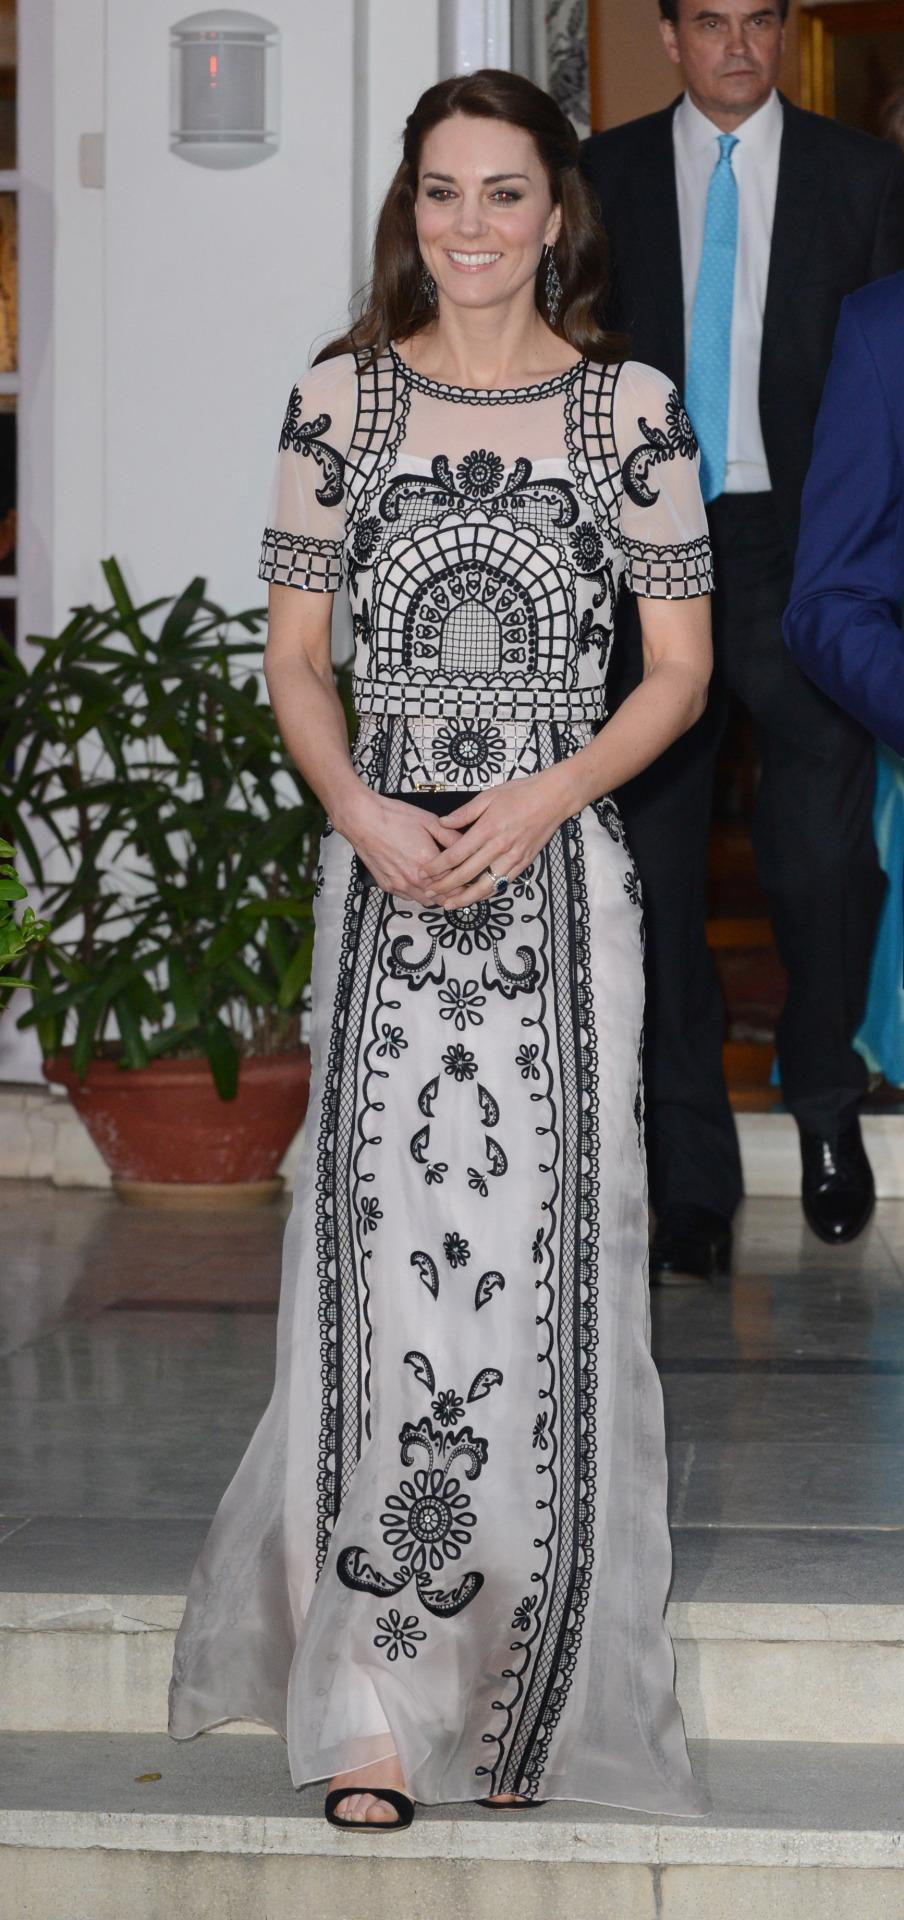 <p>While on a royal tour, Kate attended a garden party for the Queen's 90th birthday in India. Her outfit may look like an embroidered gown but it is in fact a crop top and maxi skirt by British label Temperley London. A simple black Prada clutch accessorised. </p><p><i>[Photo: PA]</i></p>